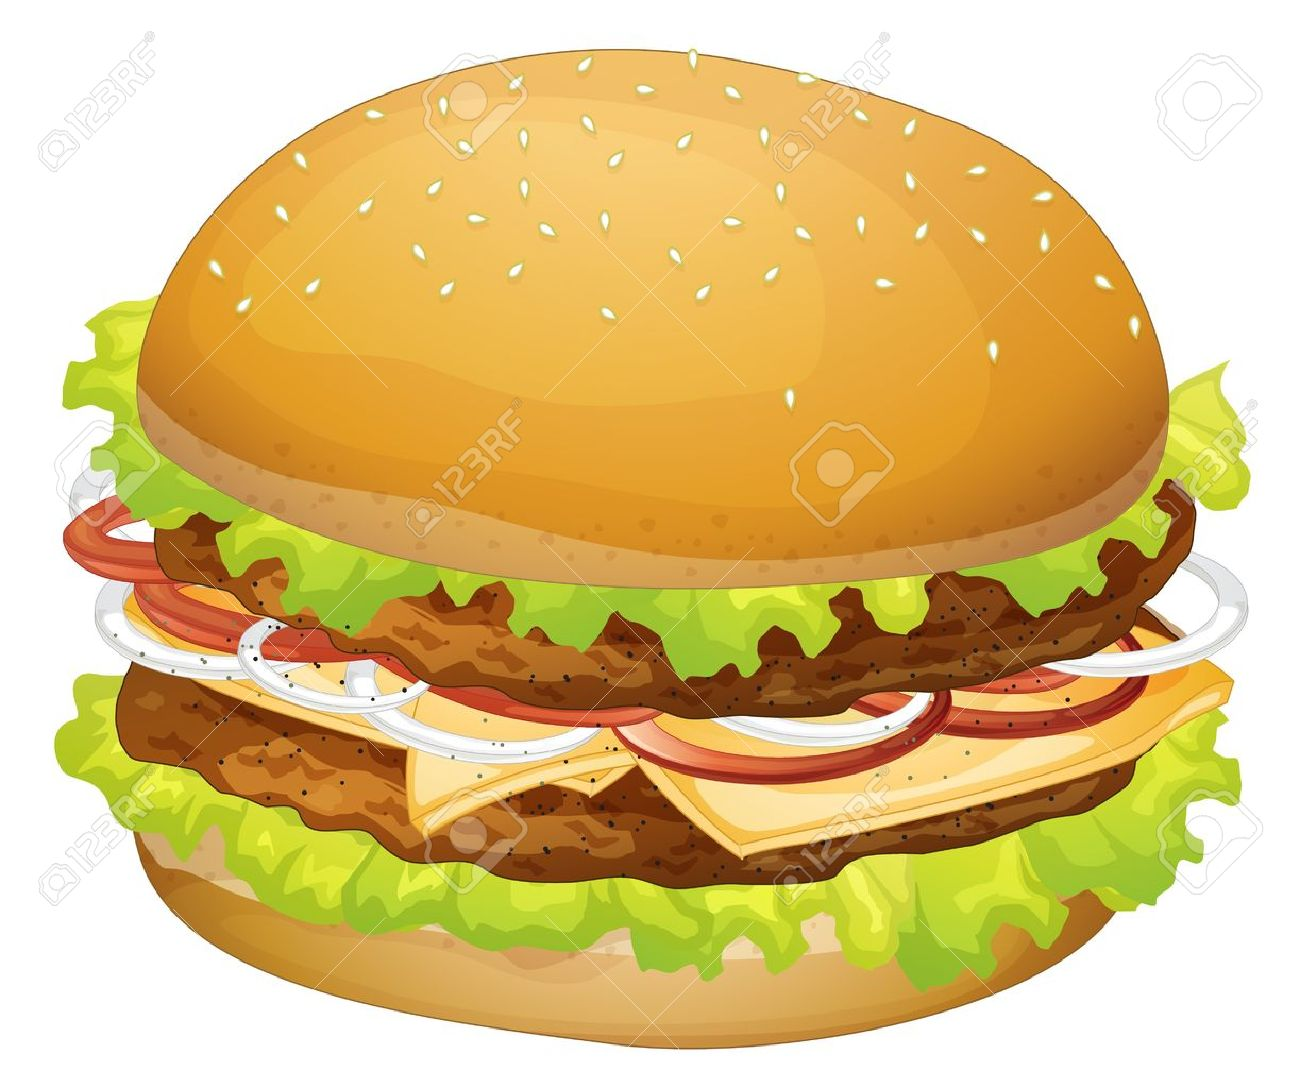 Hamburger Clipart.